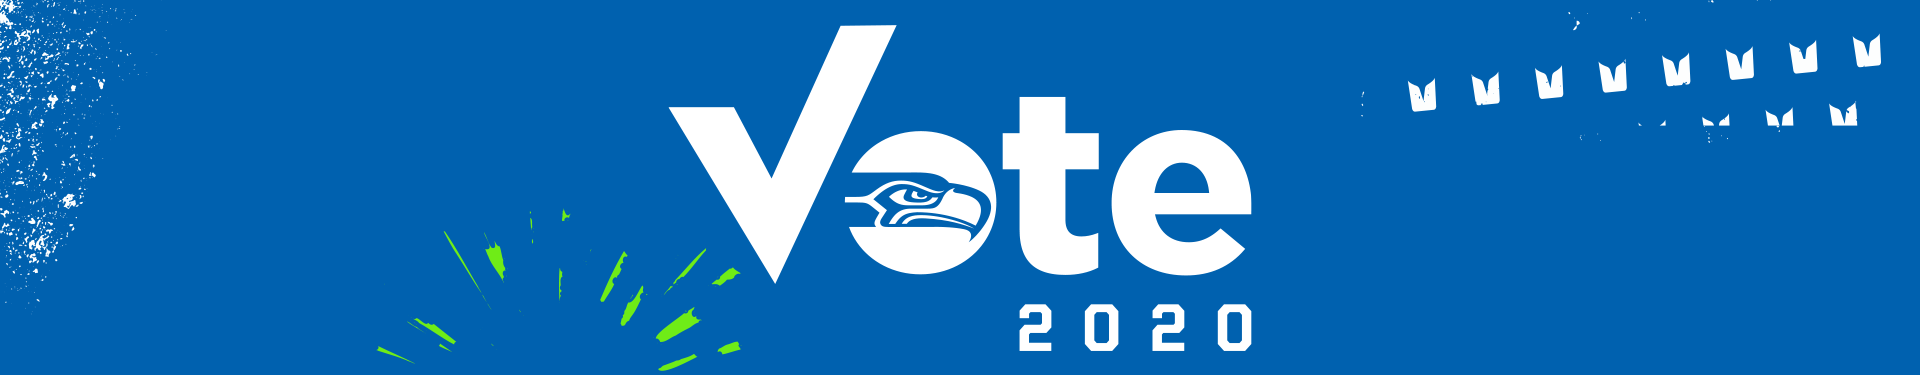 200831-vote-logo-page-header-1920x375